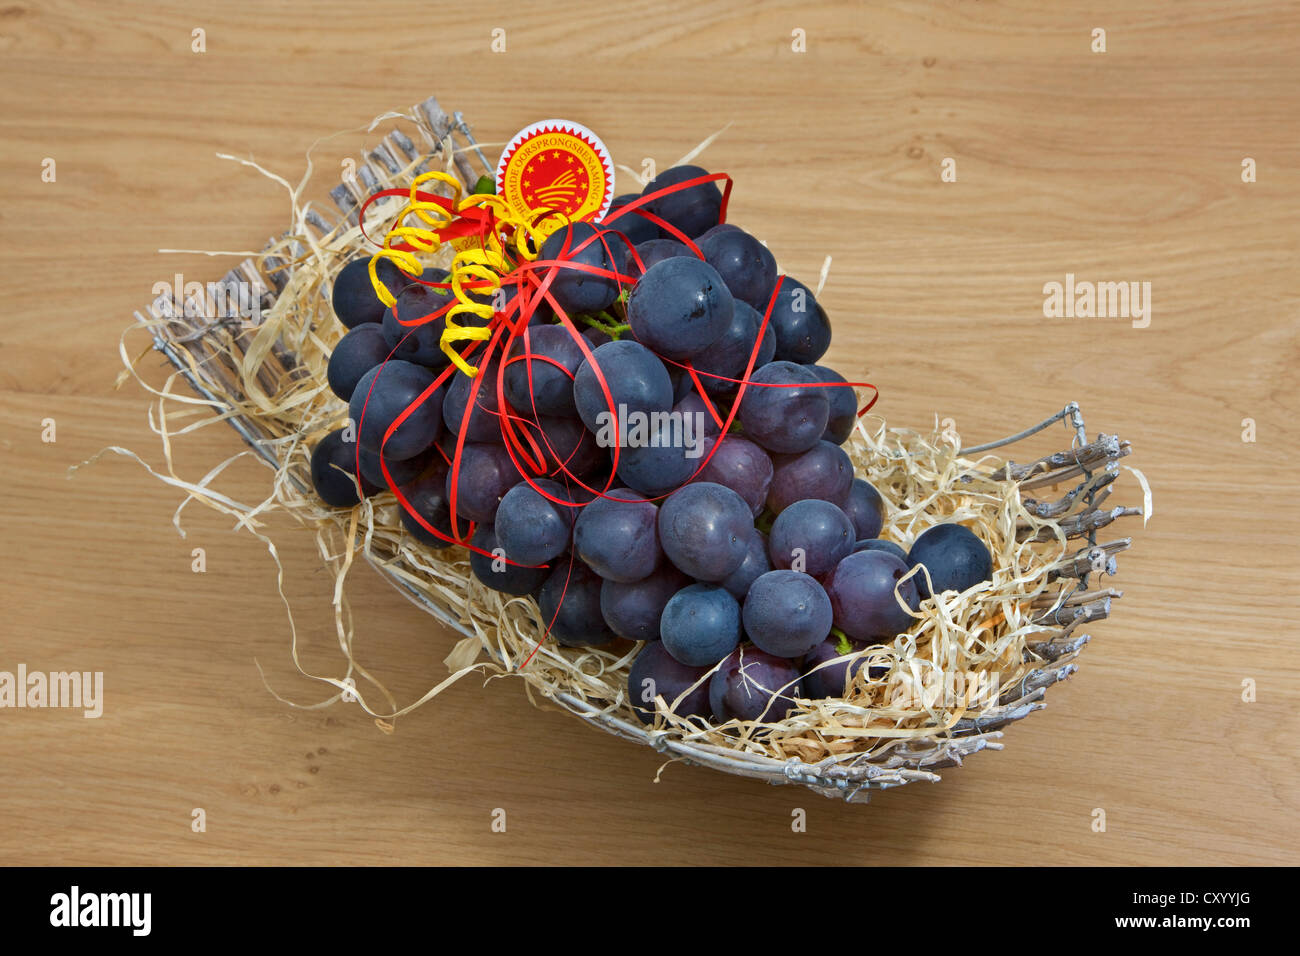 Presentation of blue table grapes (Vitis vinifera) from Flemish Brabant, Flanders, Belgium - Stock Image